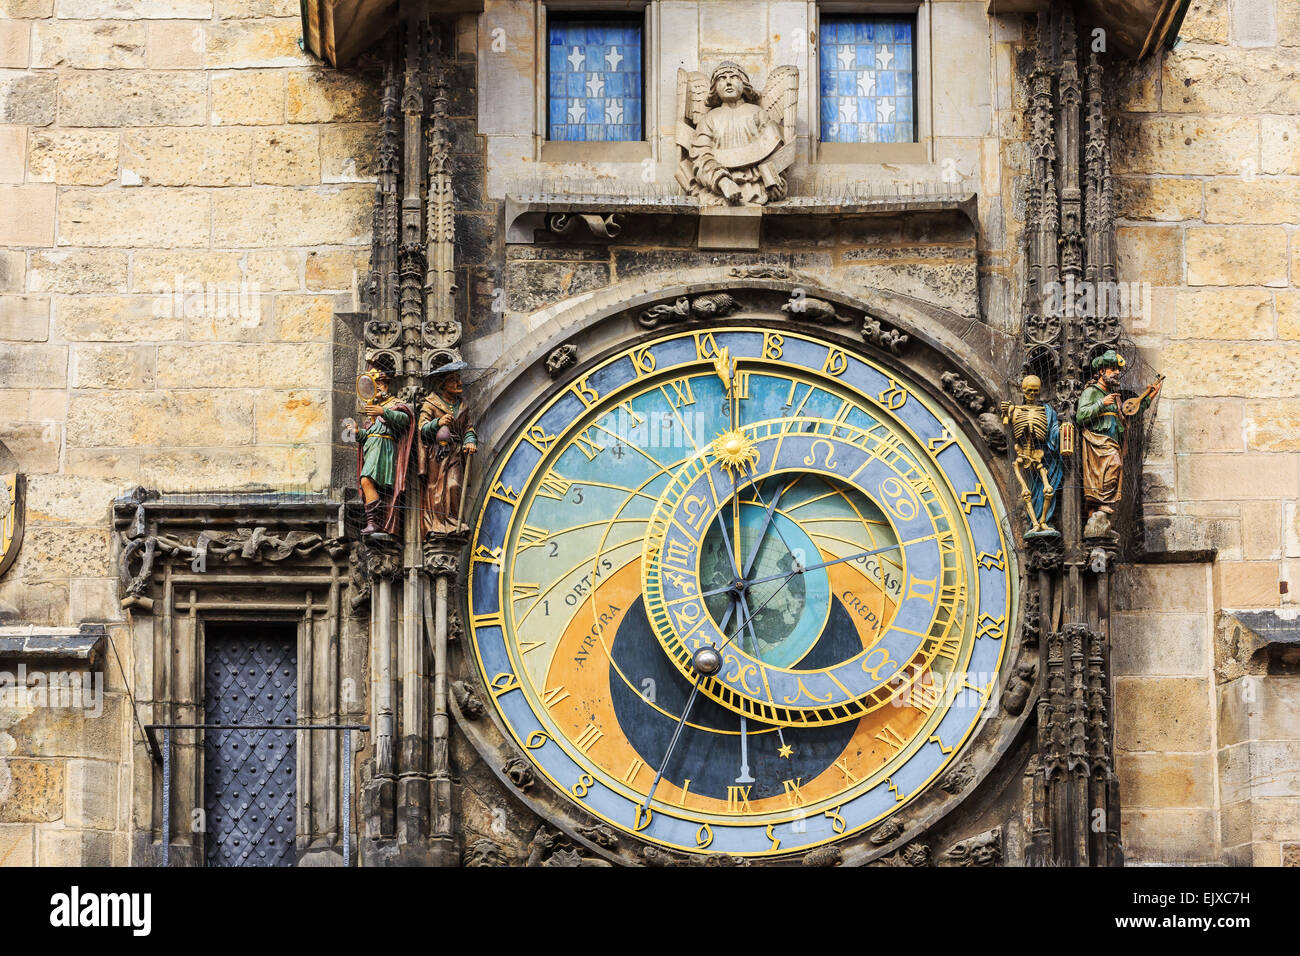 Astronomical Clock, Prague. Czech Republic - Stock Image